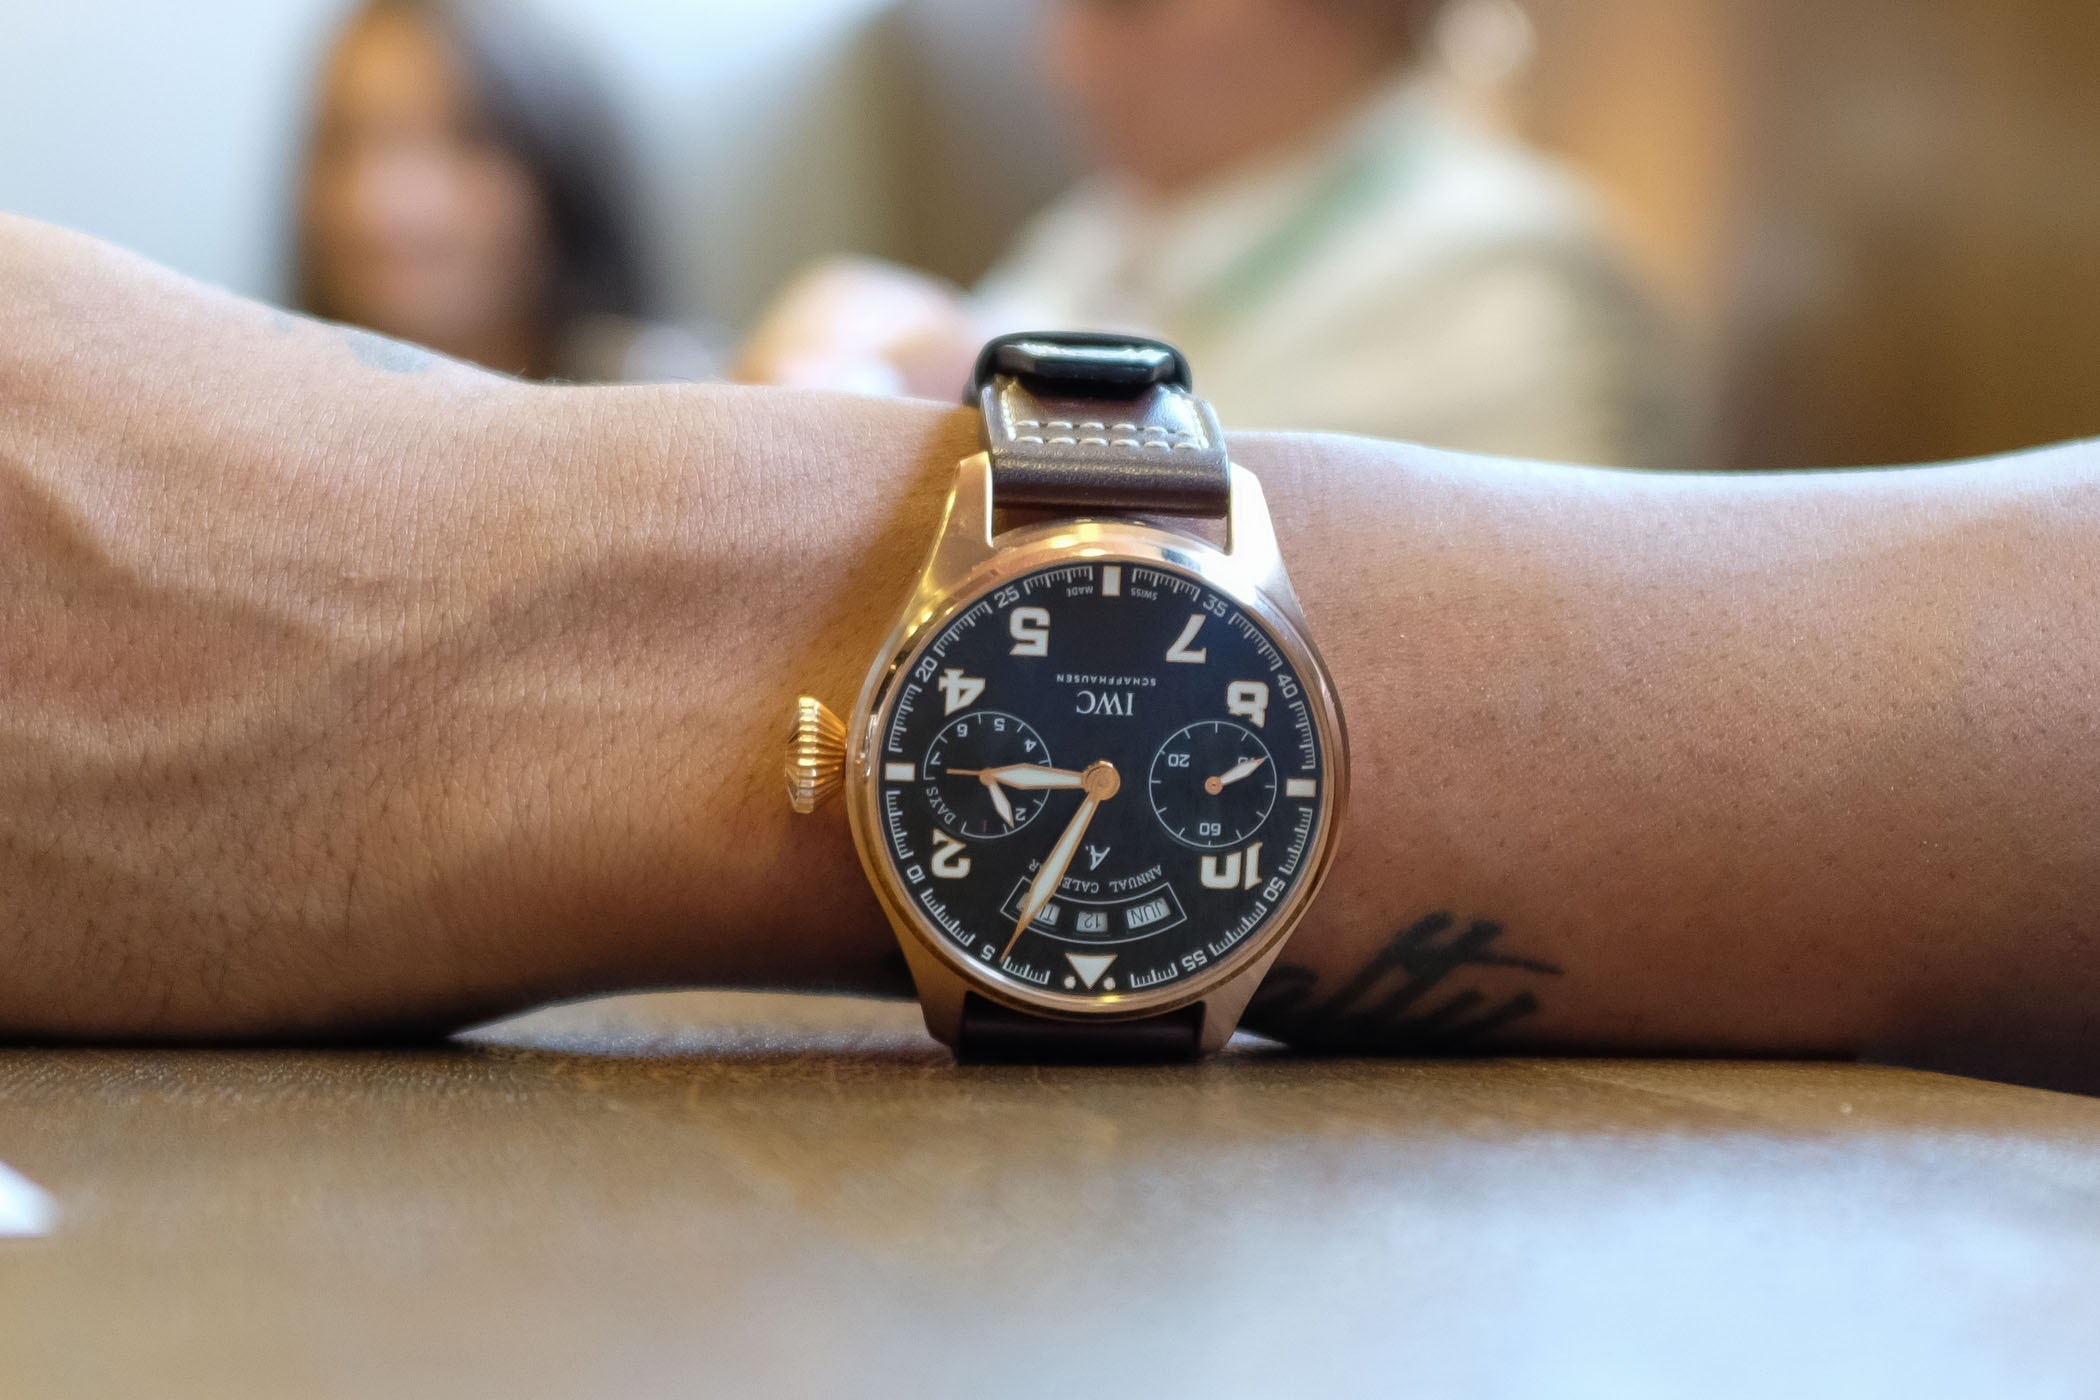 Interview with Lewis Hamilton about Formula 1, IWC Watches and what may be next